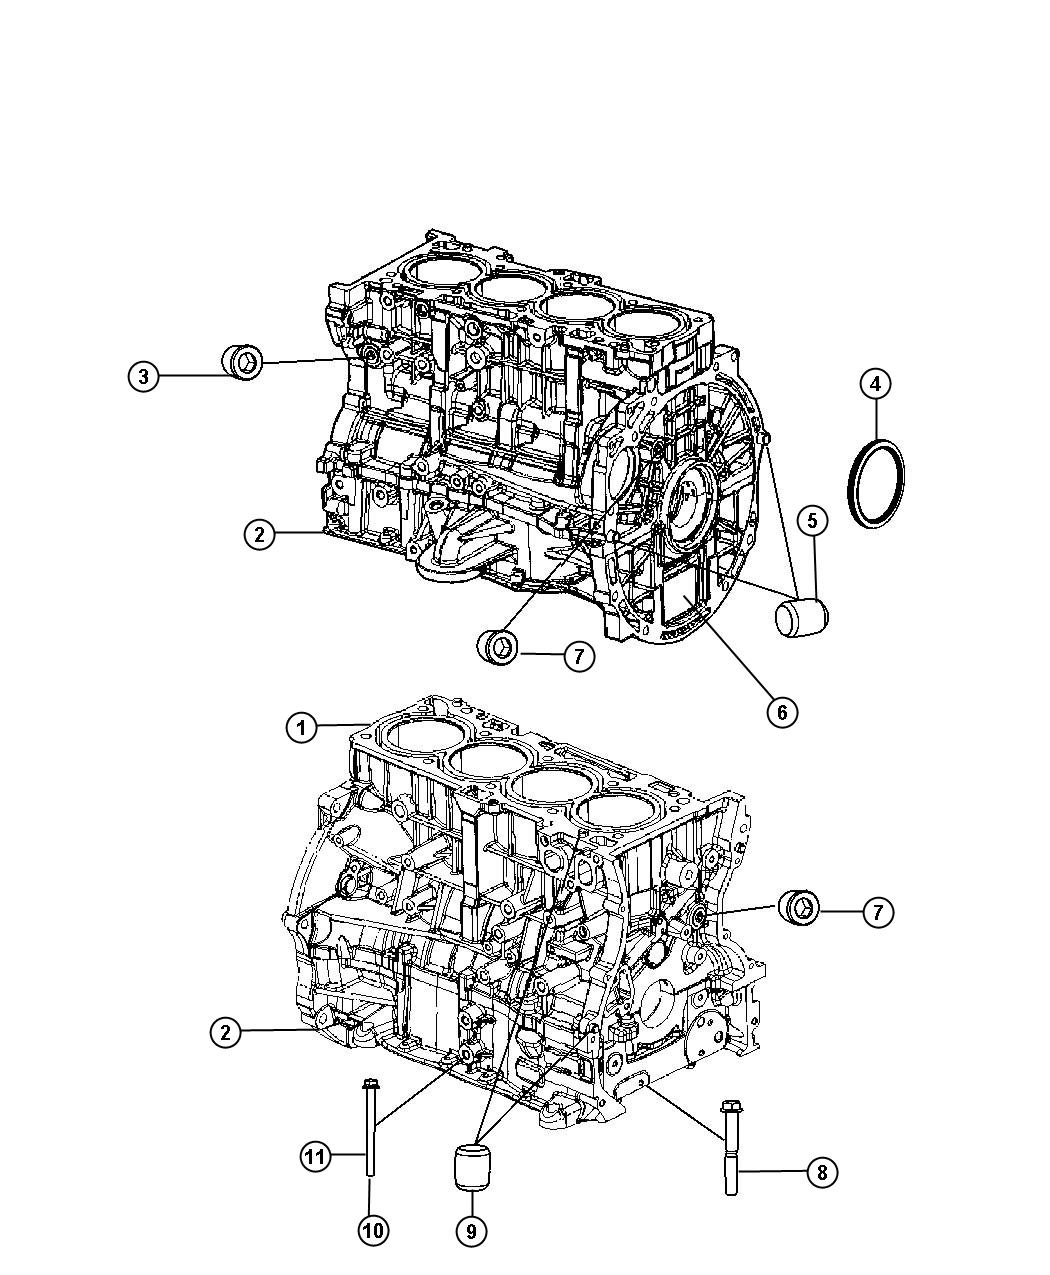 2010 dodge journey engine parts diagram  2010  free engine